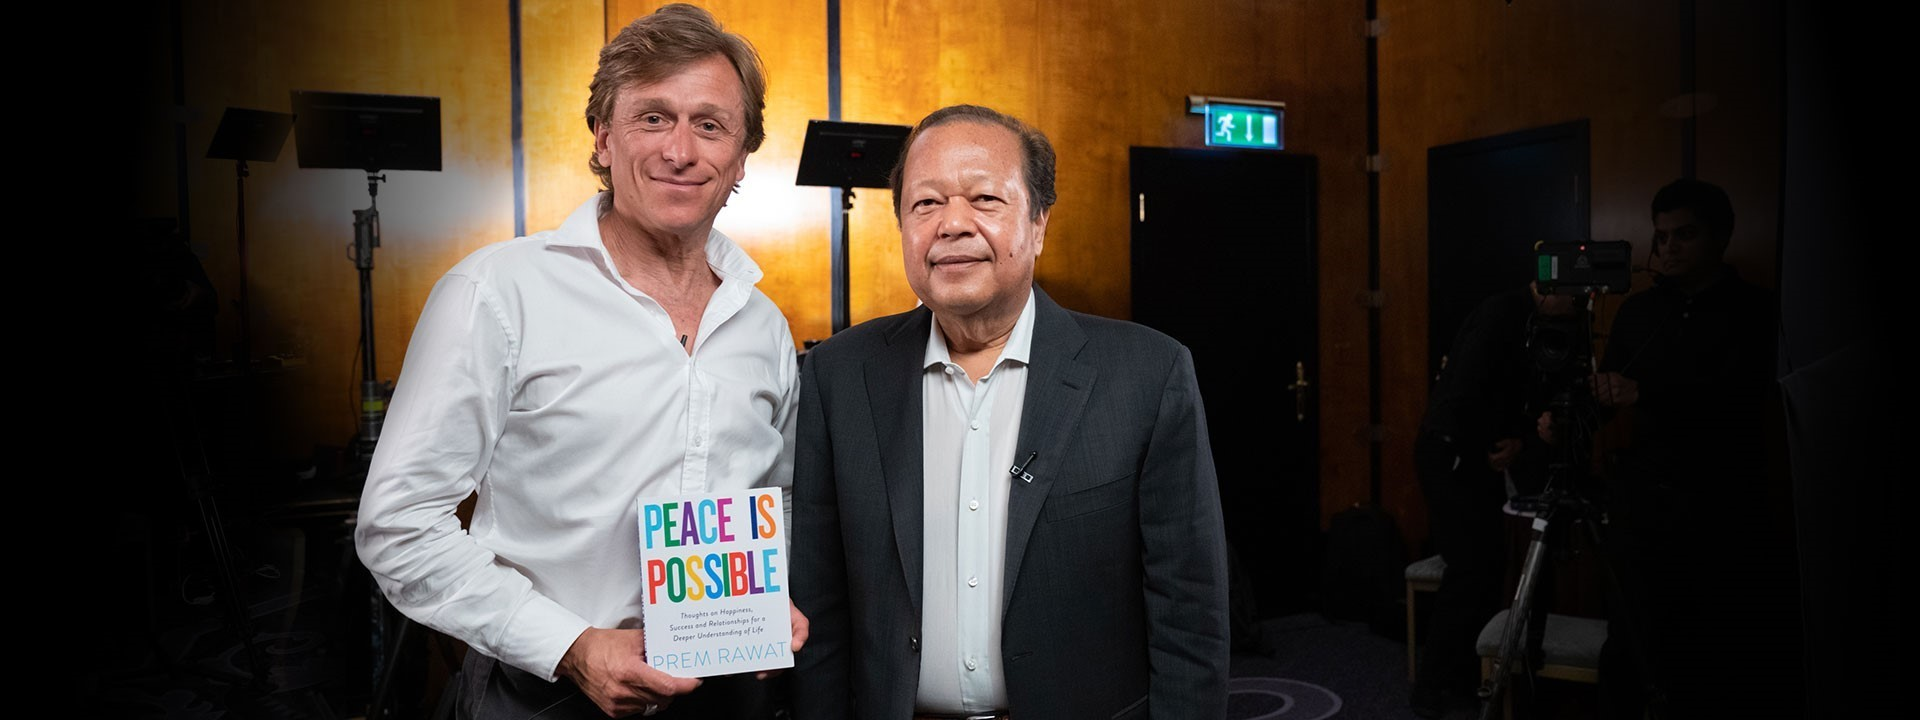 Prem in Conversation with Jeremy Gilley